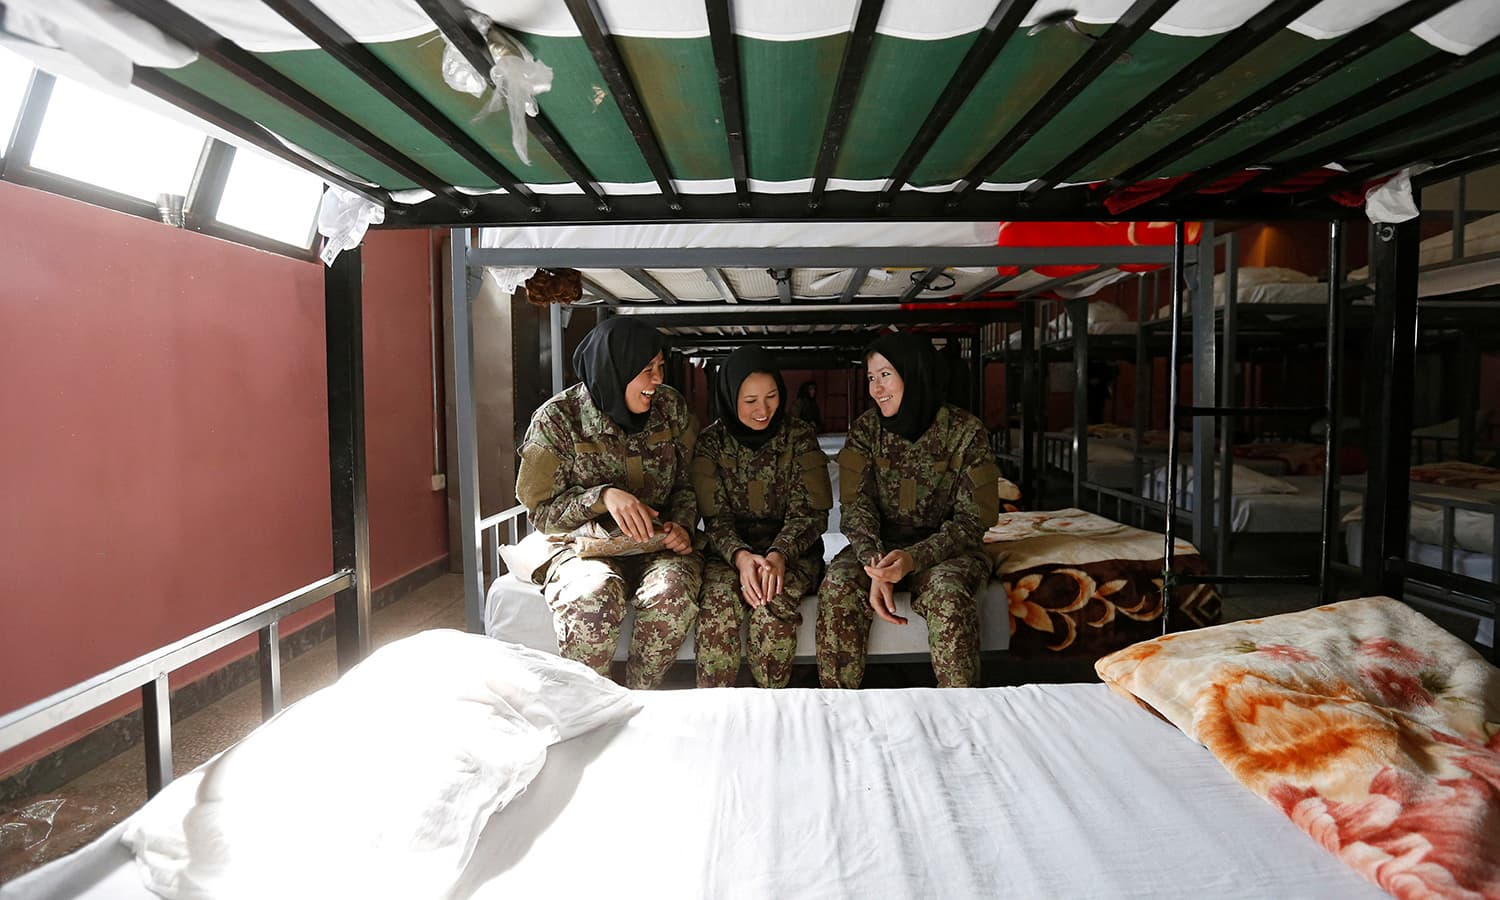 Female soldiers Zarmina Ahmadi, 22 (L), Adela Haidari, 23 (C), and Sabera, 21 (R), from the Afghan National Army (ANA) rest in their barracks at the Kabul Military Training Centre (KMTC) in Kabul─Reuters